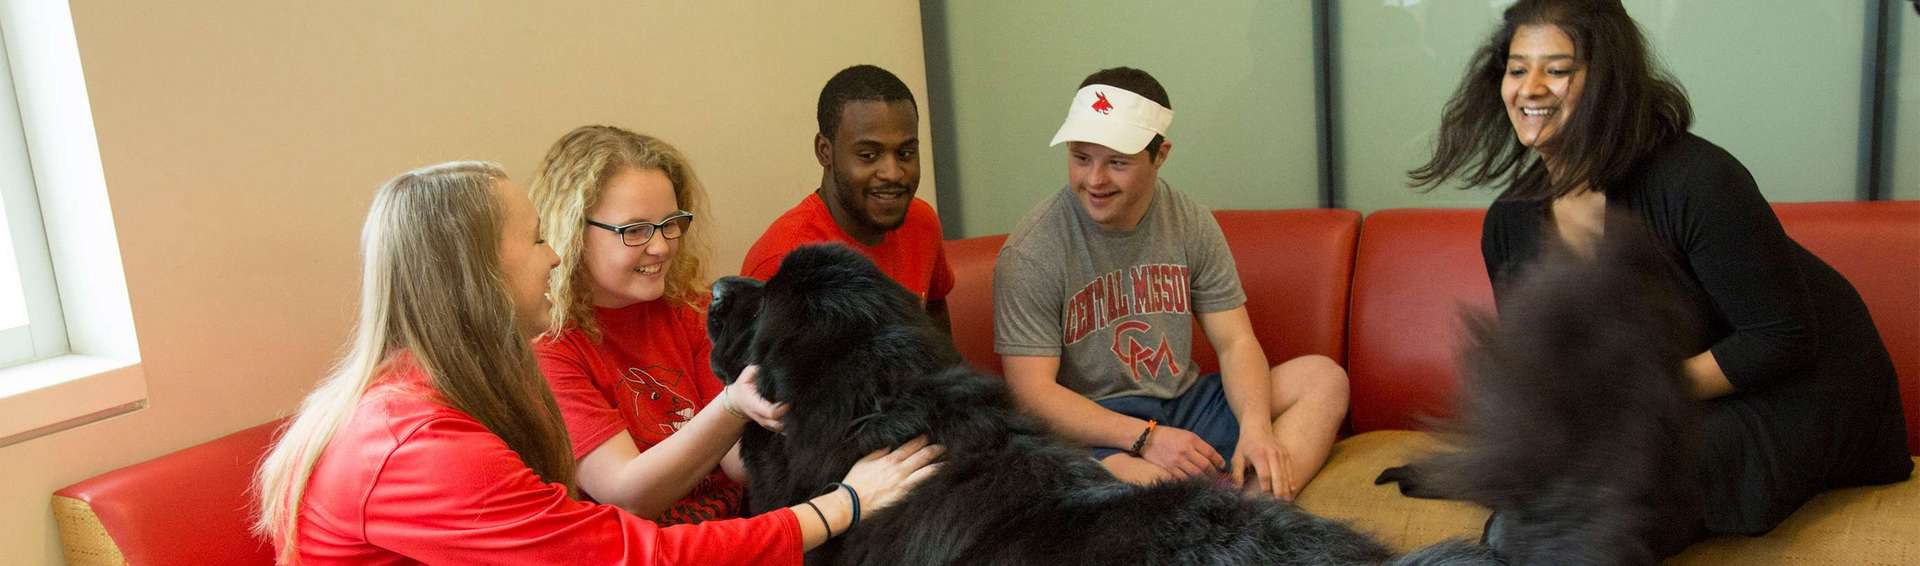 Students in the student rec center with UCM therapy dog.